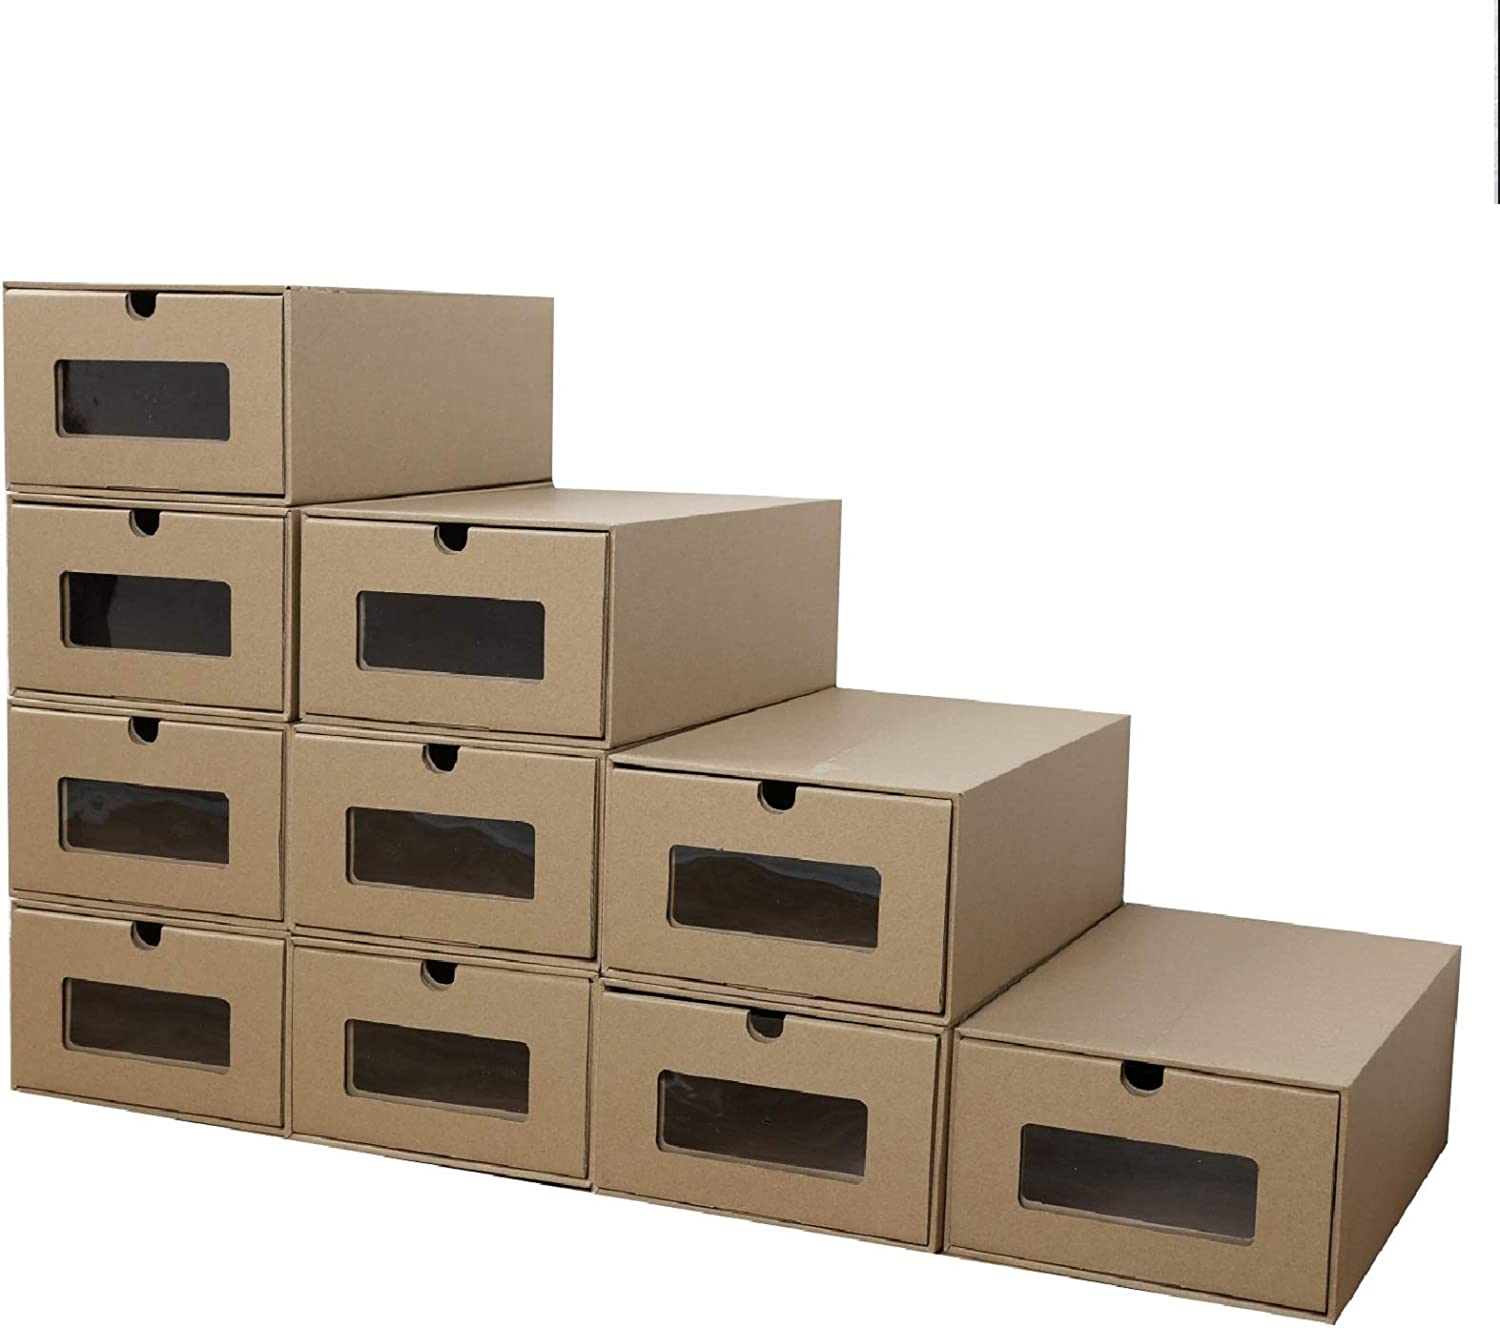 PetHot 10PCS Cardboard Shoe Storage Boxes Drawer Foldable Stackable Storage Visible